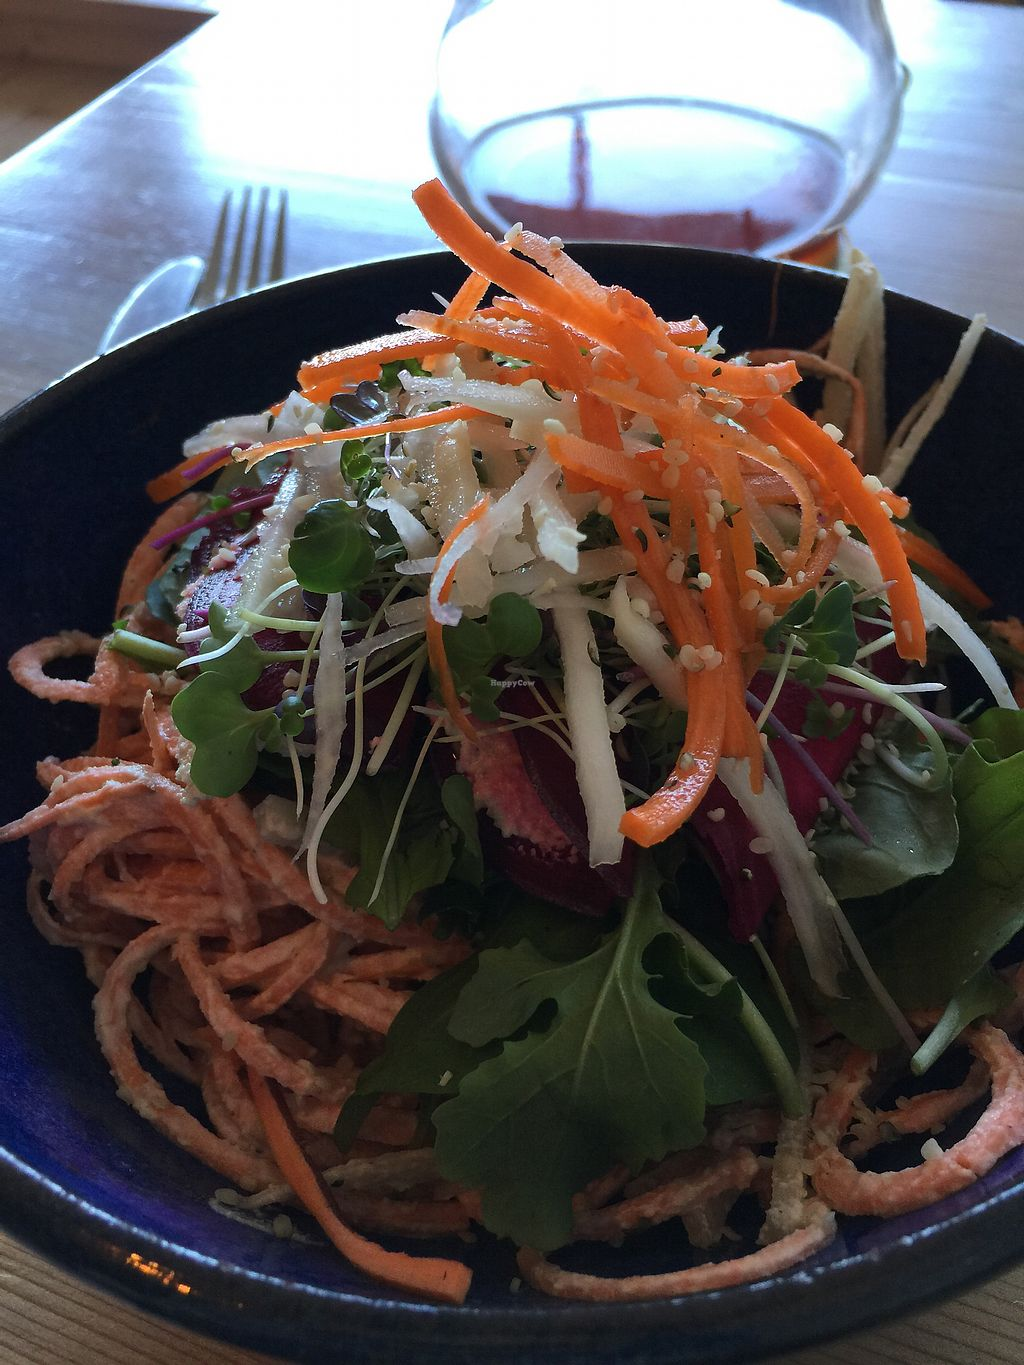 """Photo of Soulfood  by <a href=""""/members/profile/TanieWalker"""">TanieWalker</a> <br/>Raw food/vegan Alfredo!!! <br/> October 7, 2017  - <a href='/contact/abuse/image/87639/312782'>Report</a>"""